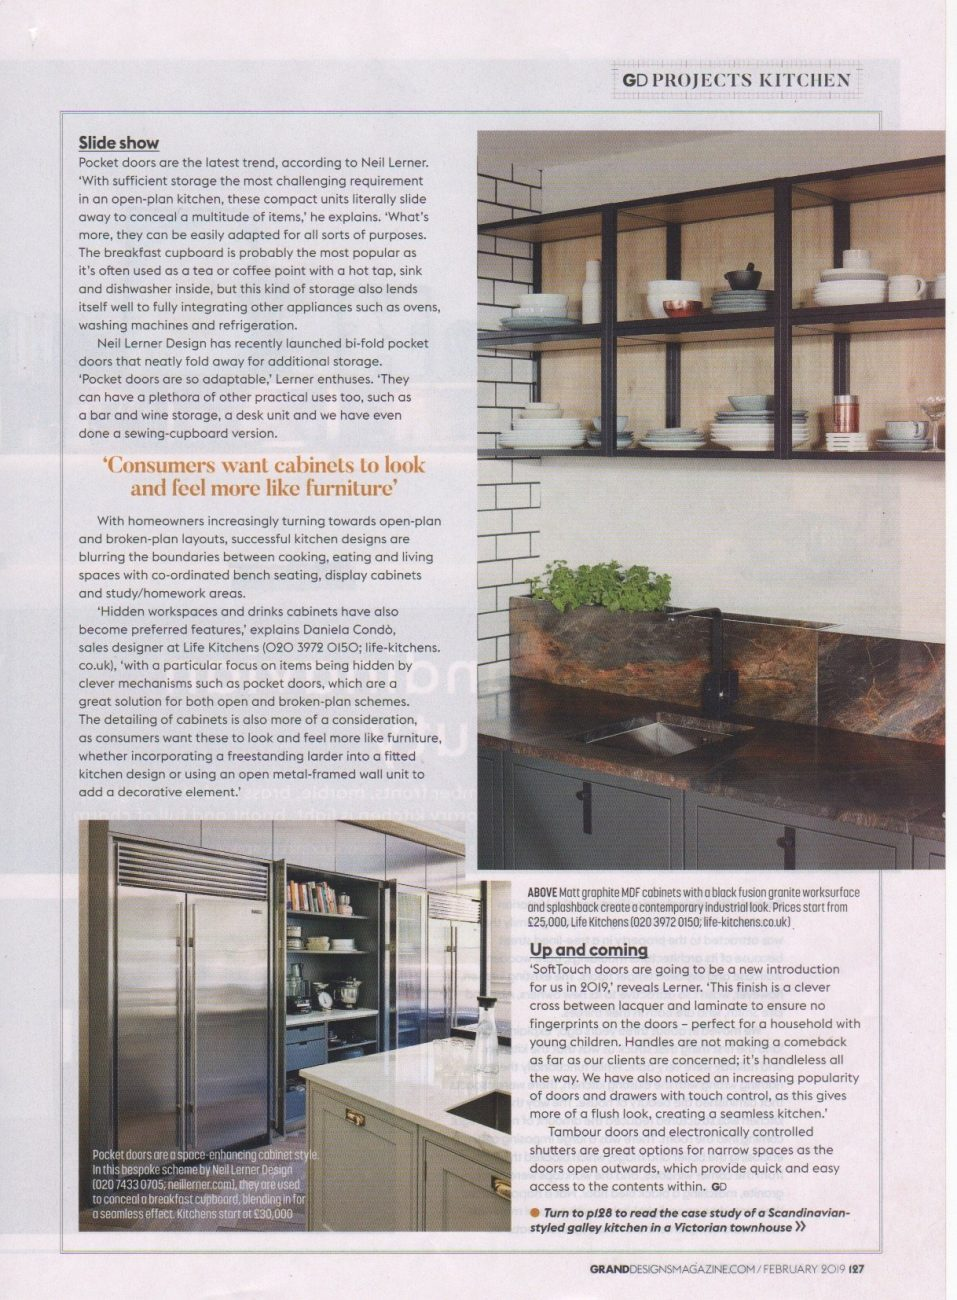 Part 4 of an article in Grand Designs magazine on design ideas for cabinets